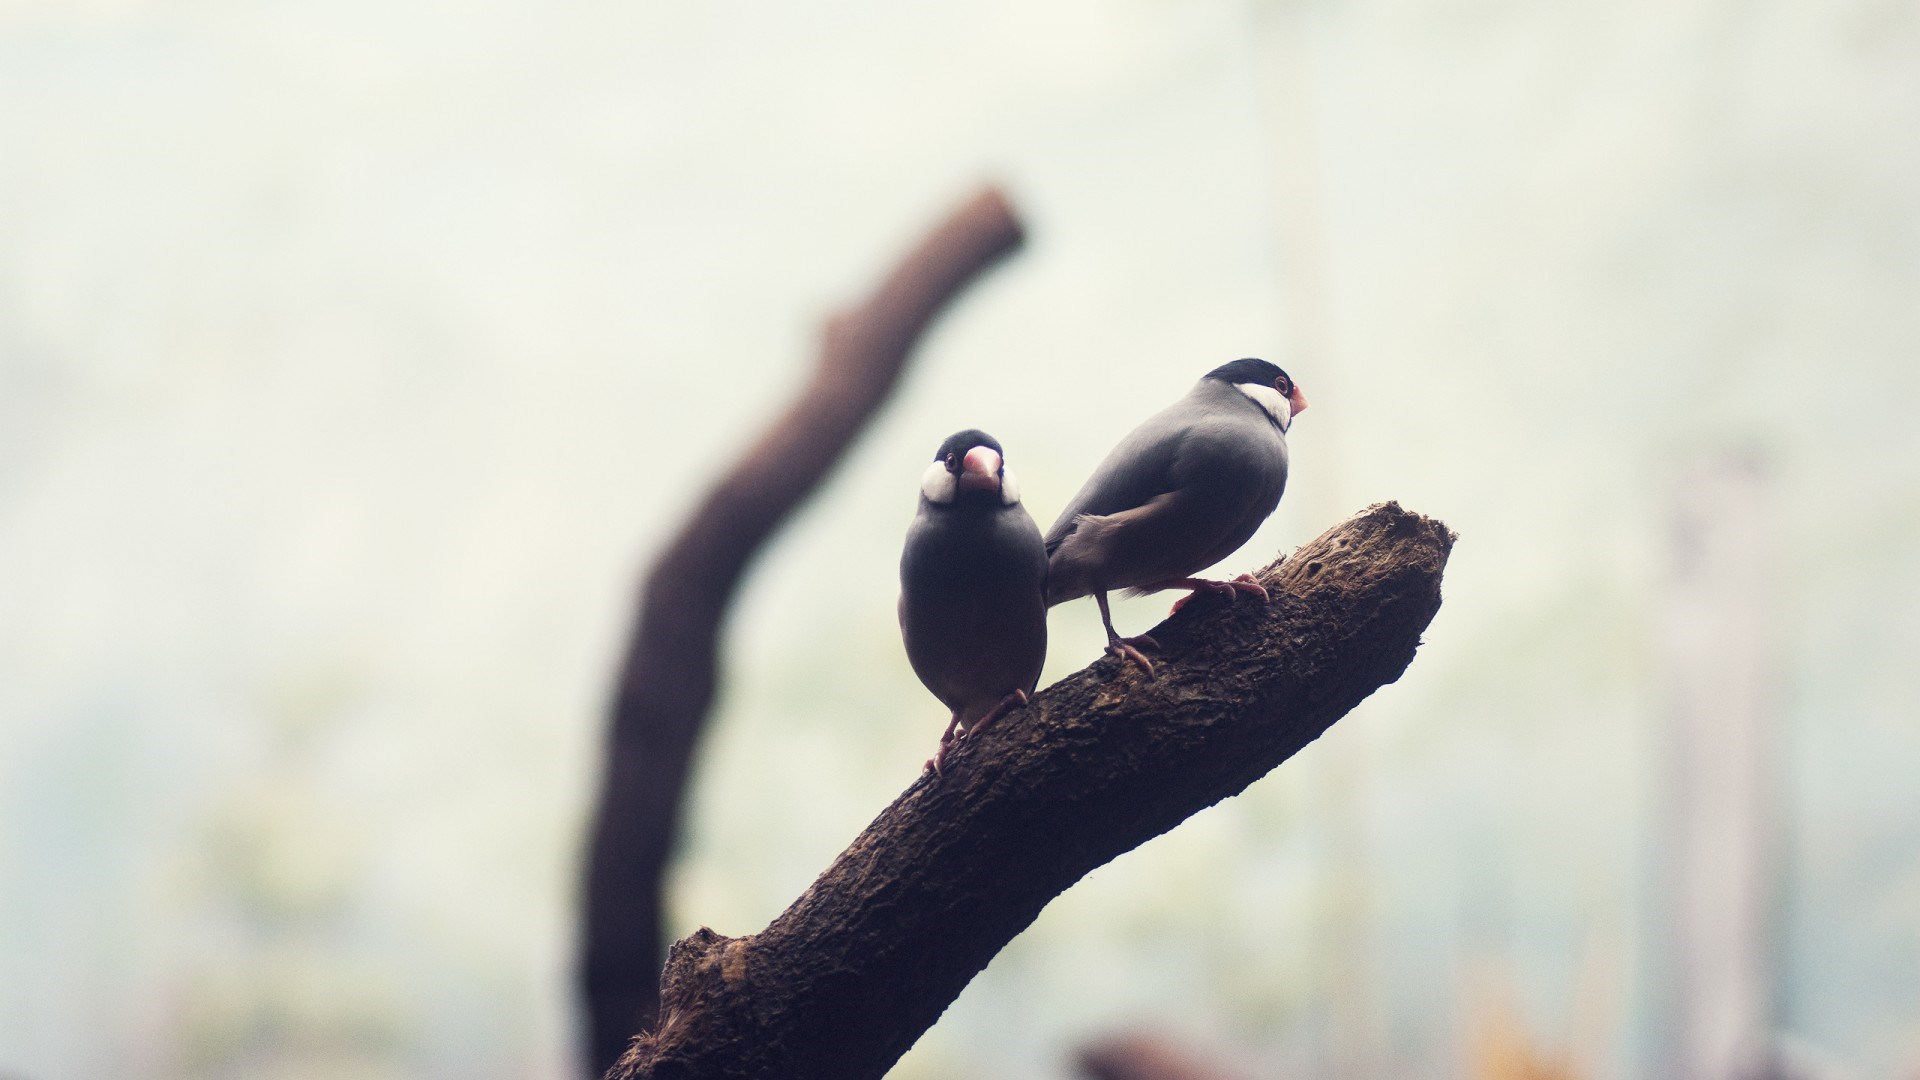 birds free images